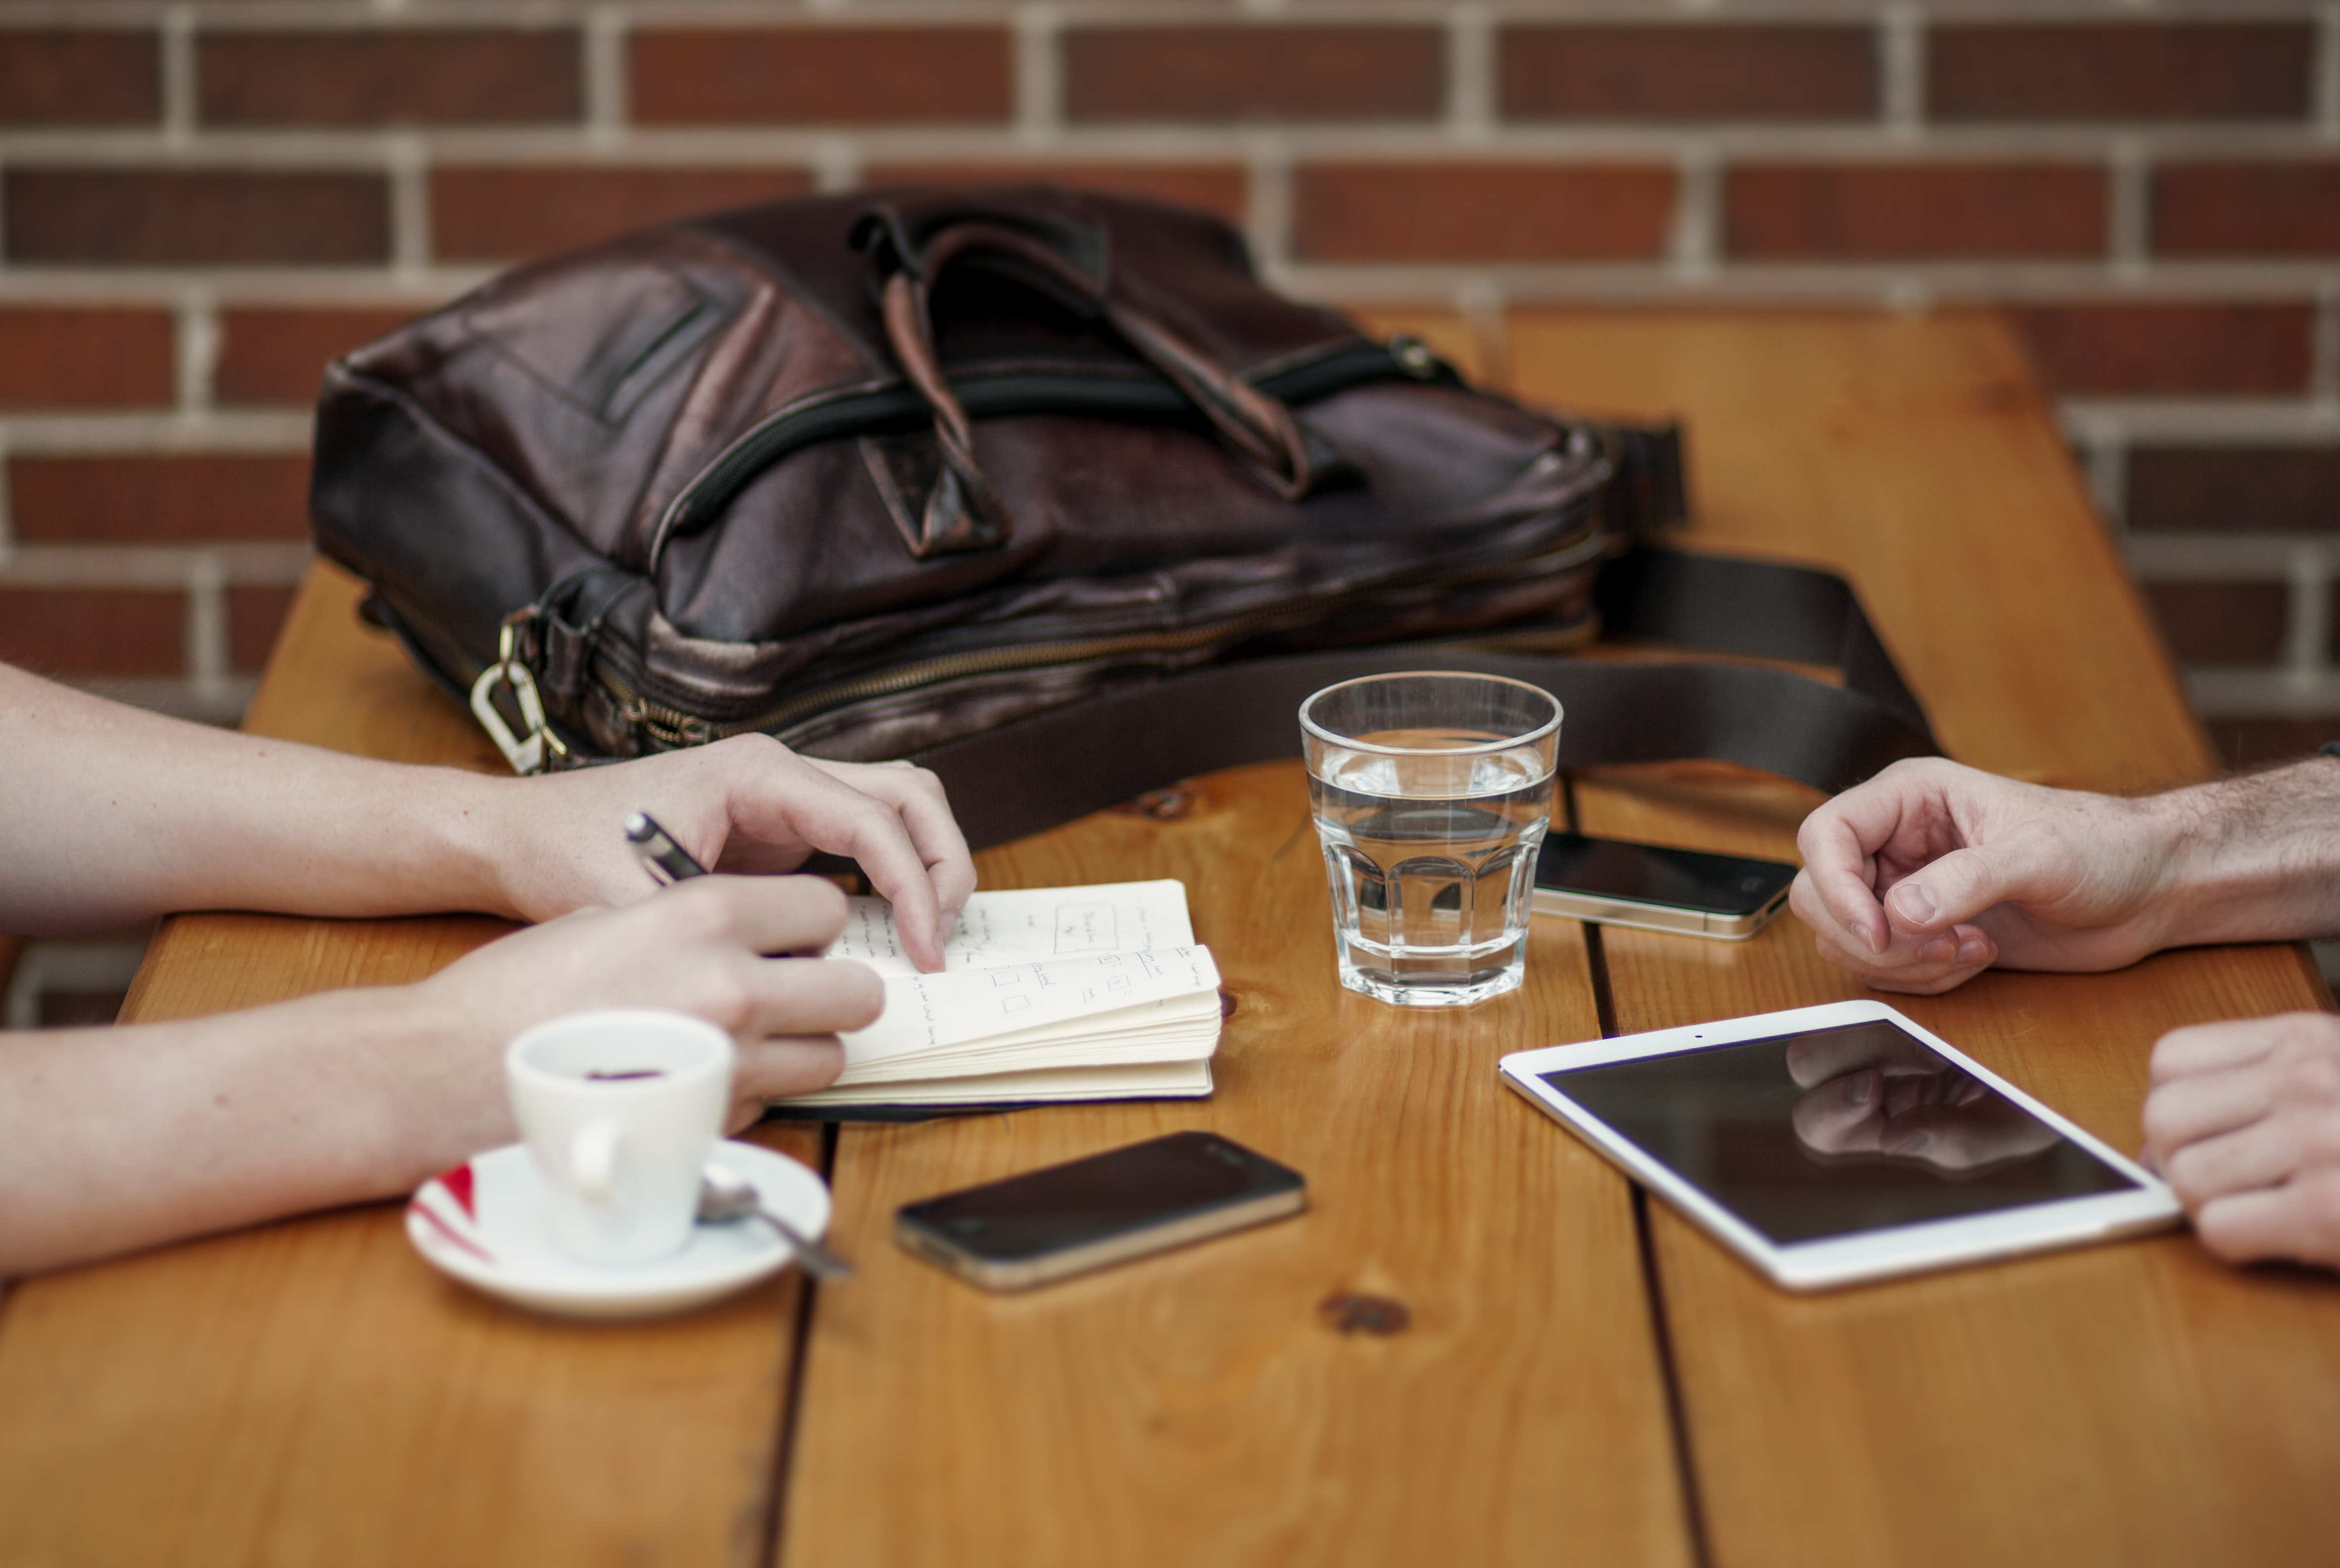 Two people having a meeting while displaying their iphone, ipad, and smartphone on the table.